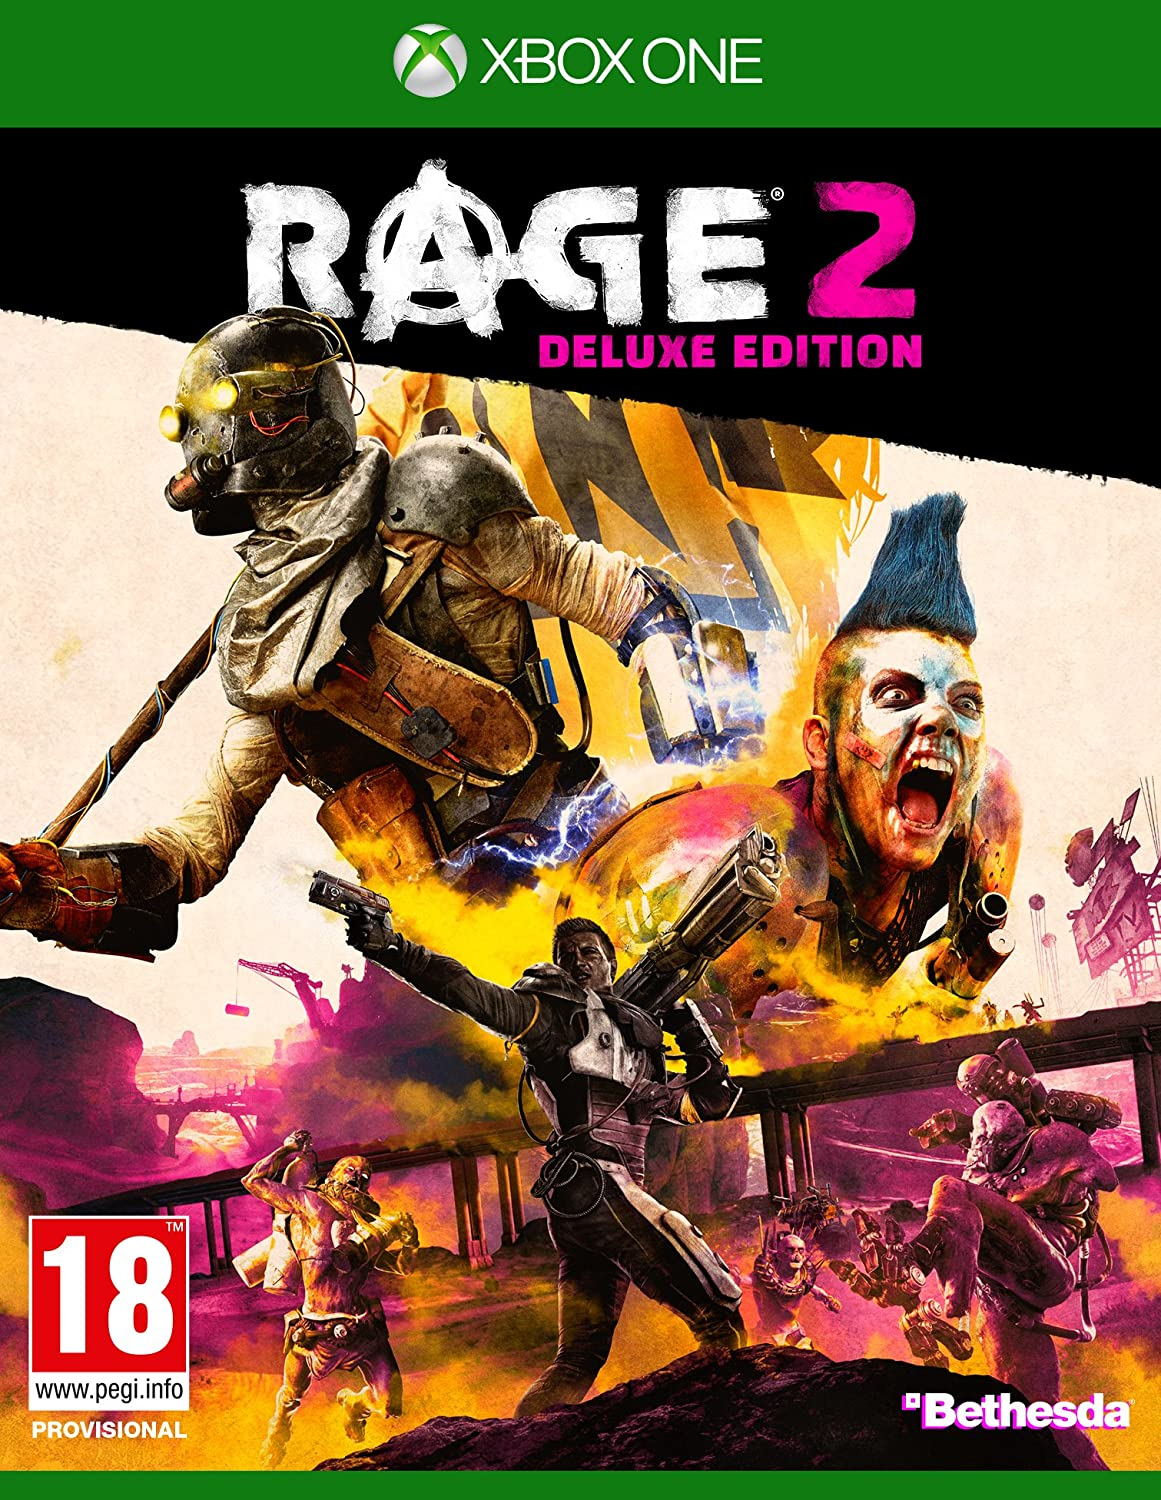 Rage 2 Deluxe Edition - Xbox One: Amazon.es: Videojuegos